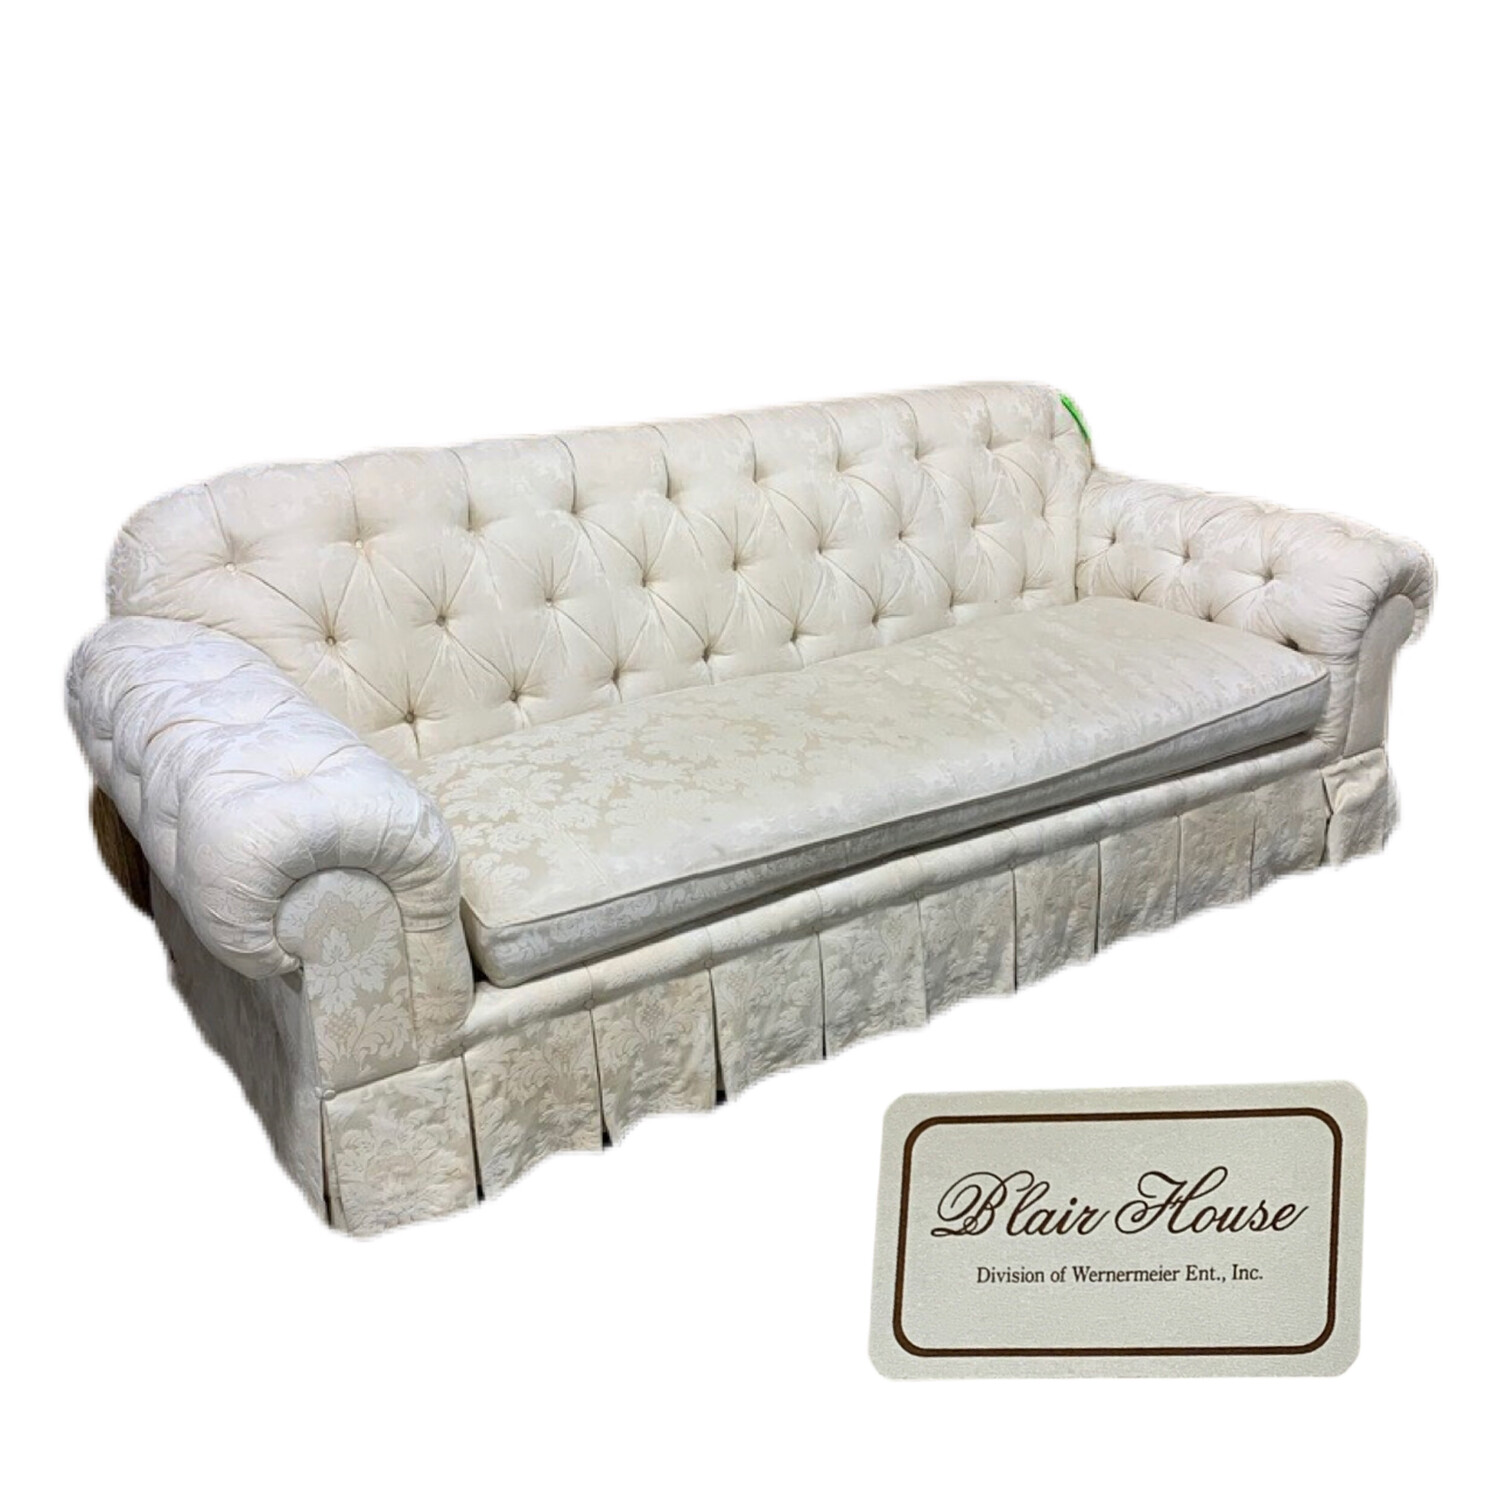 Blair House White Sofa